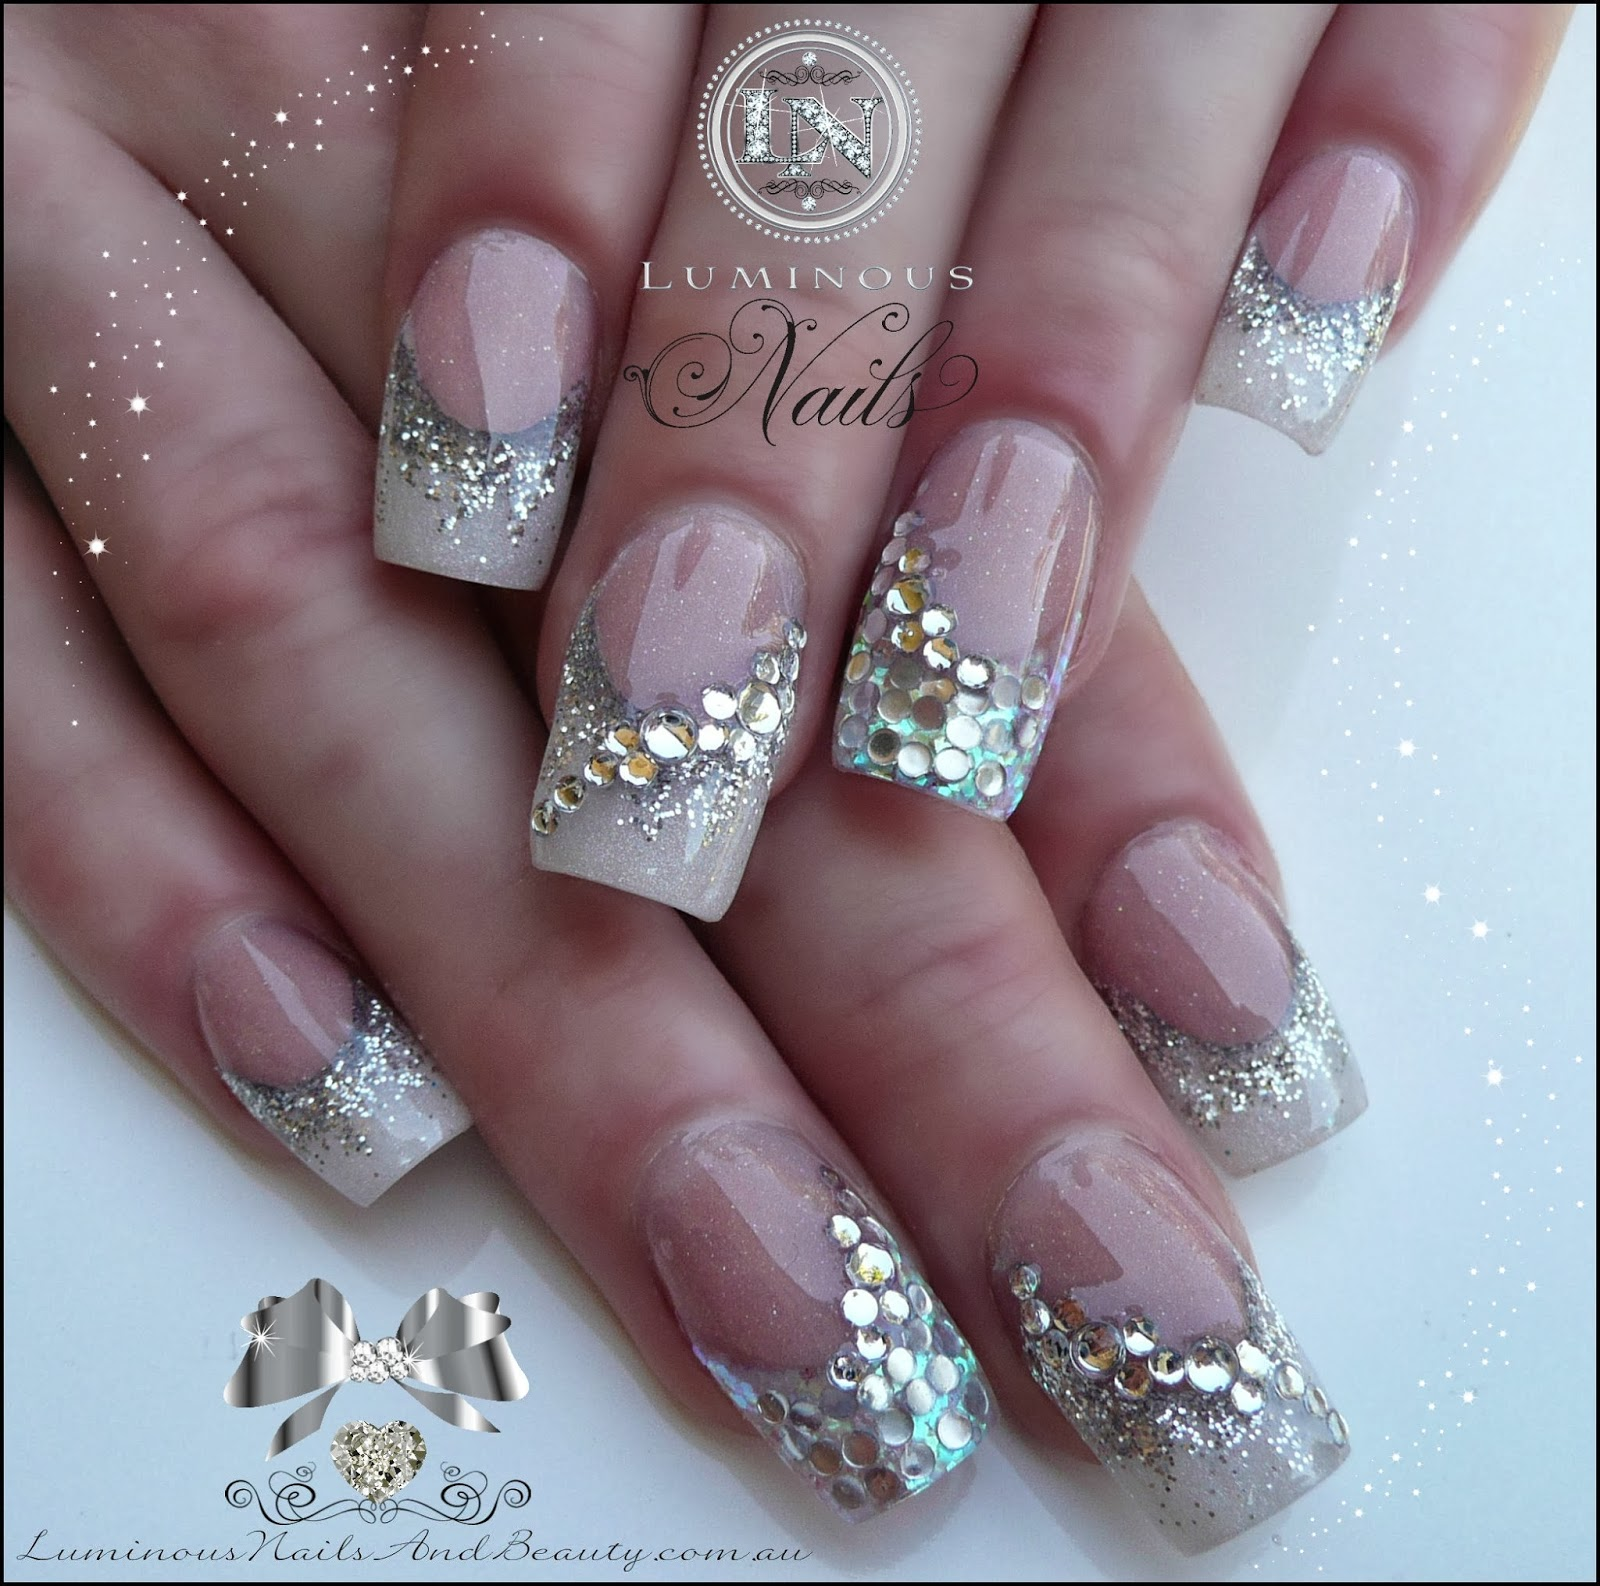 Nail Designs With Rhinestones And Glitter | Best Nail Designs 2018